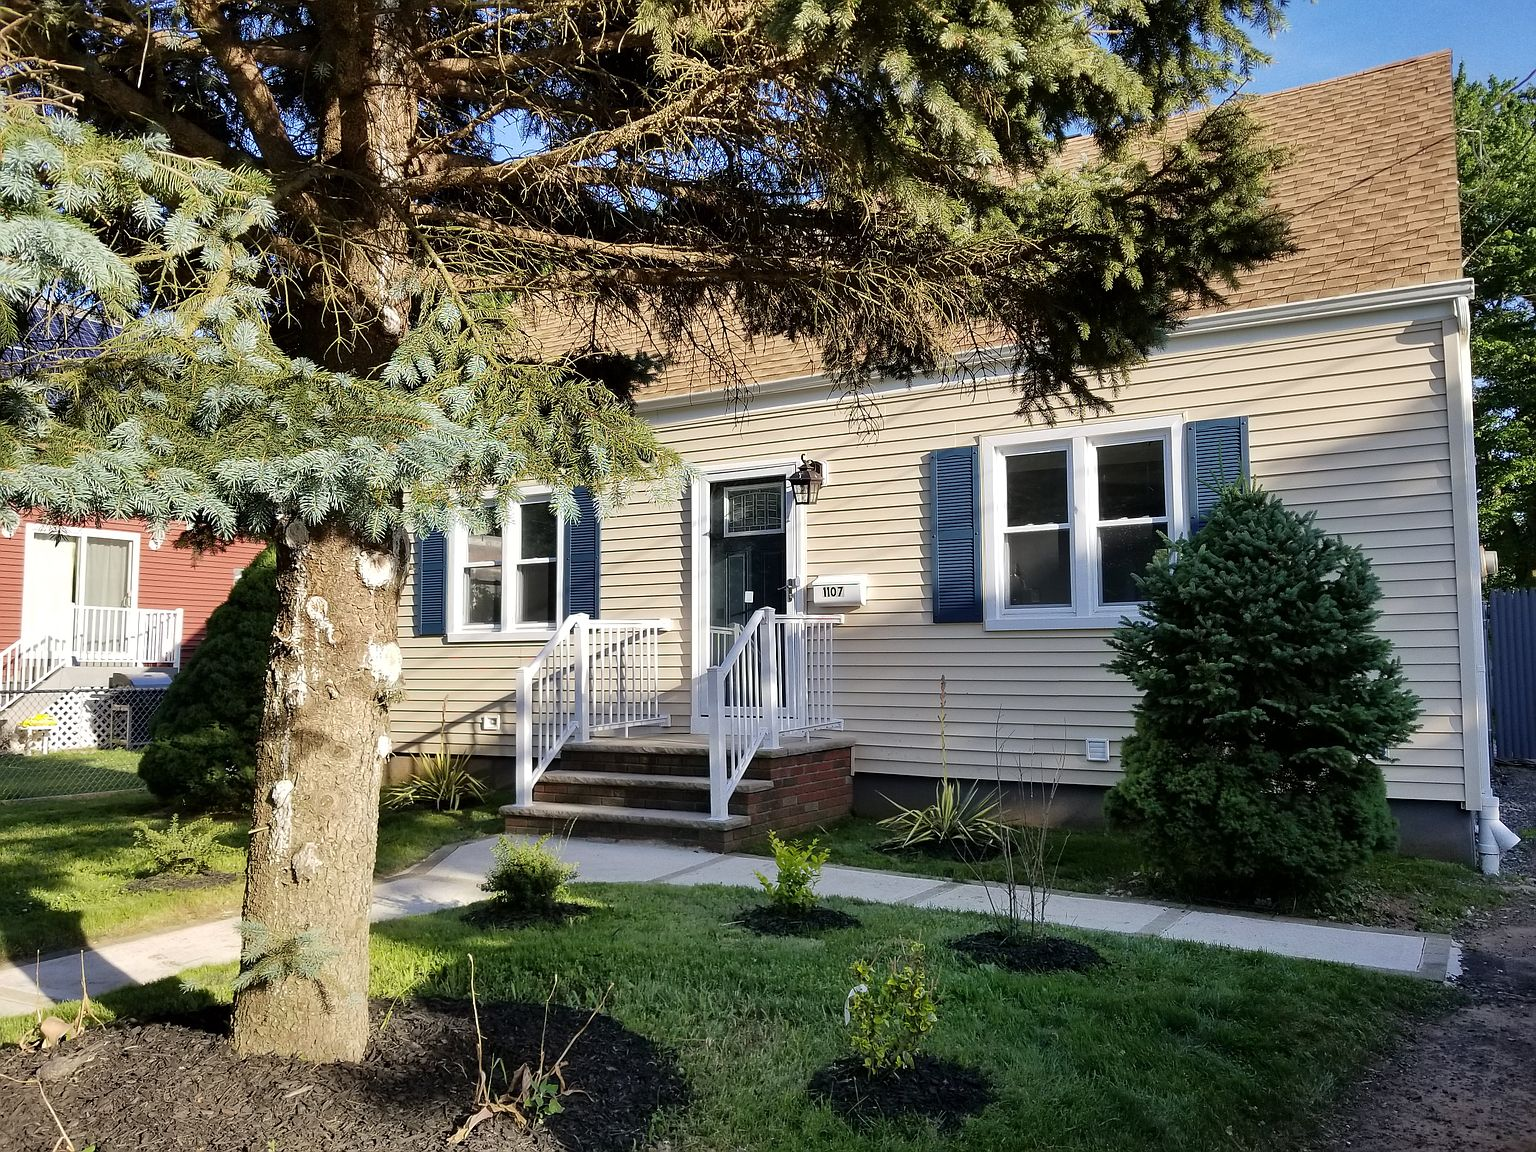 1107 Gress St Manville Nj 08835 Zillow